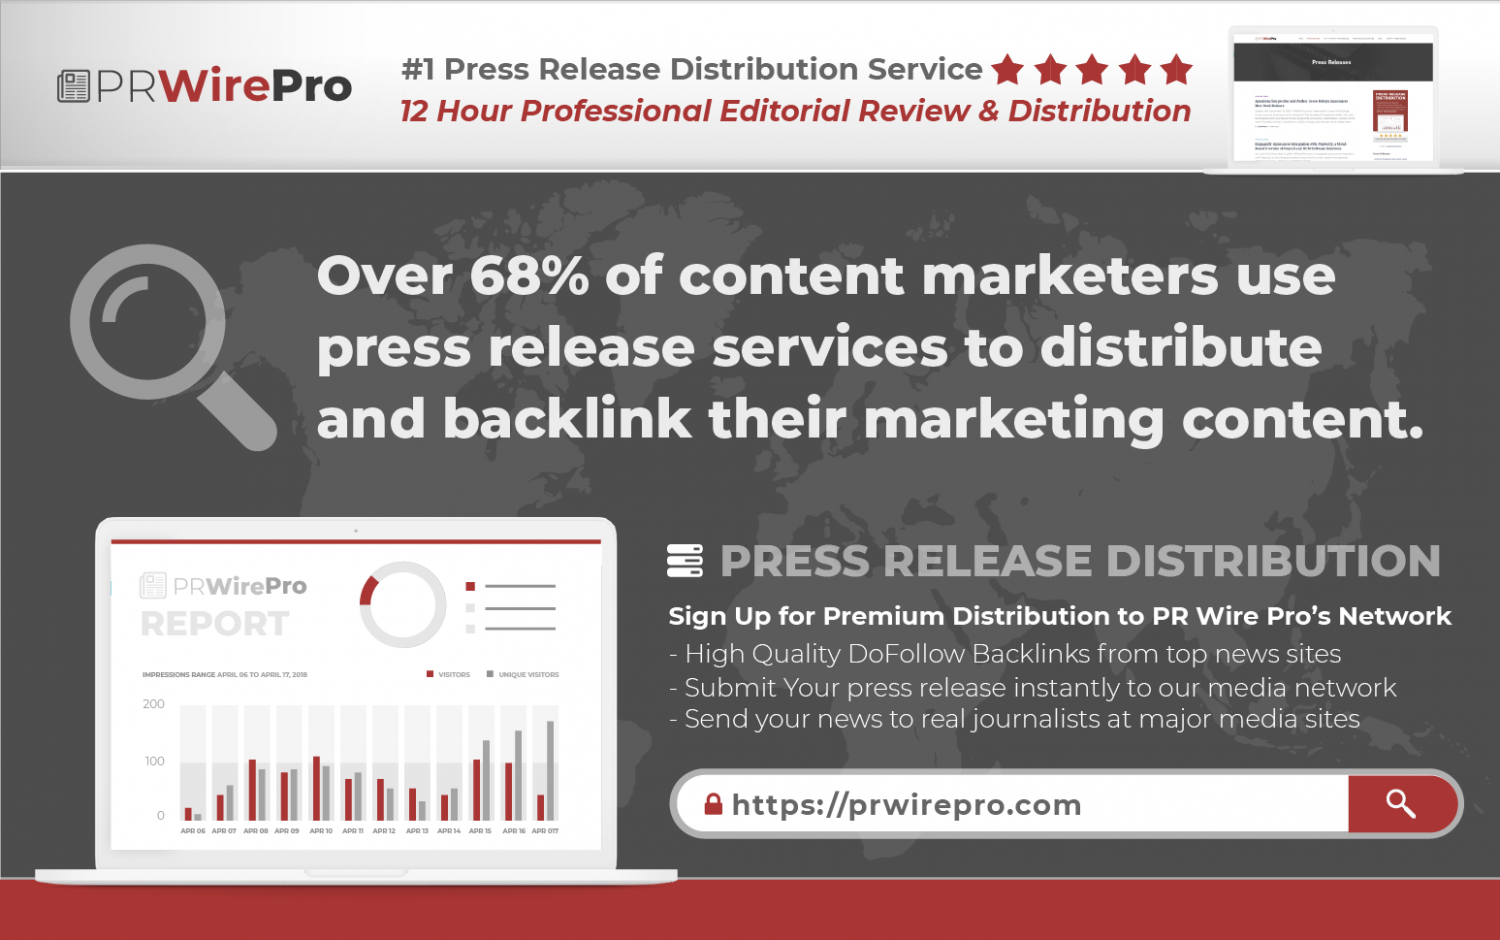 PRESS RELEASE DISTRIBUTION MARKETING STATISTICS - AD plus INFOGRAPHIC Infographic